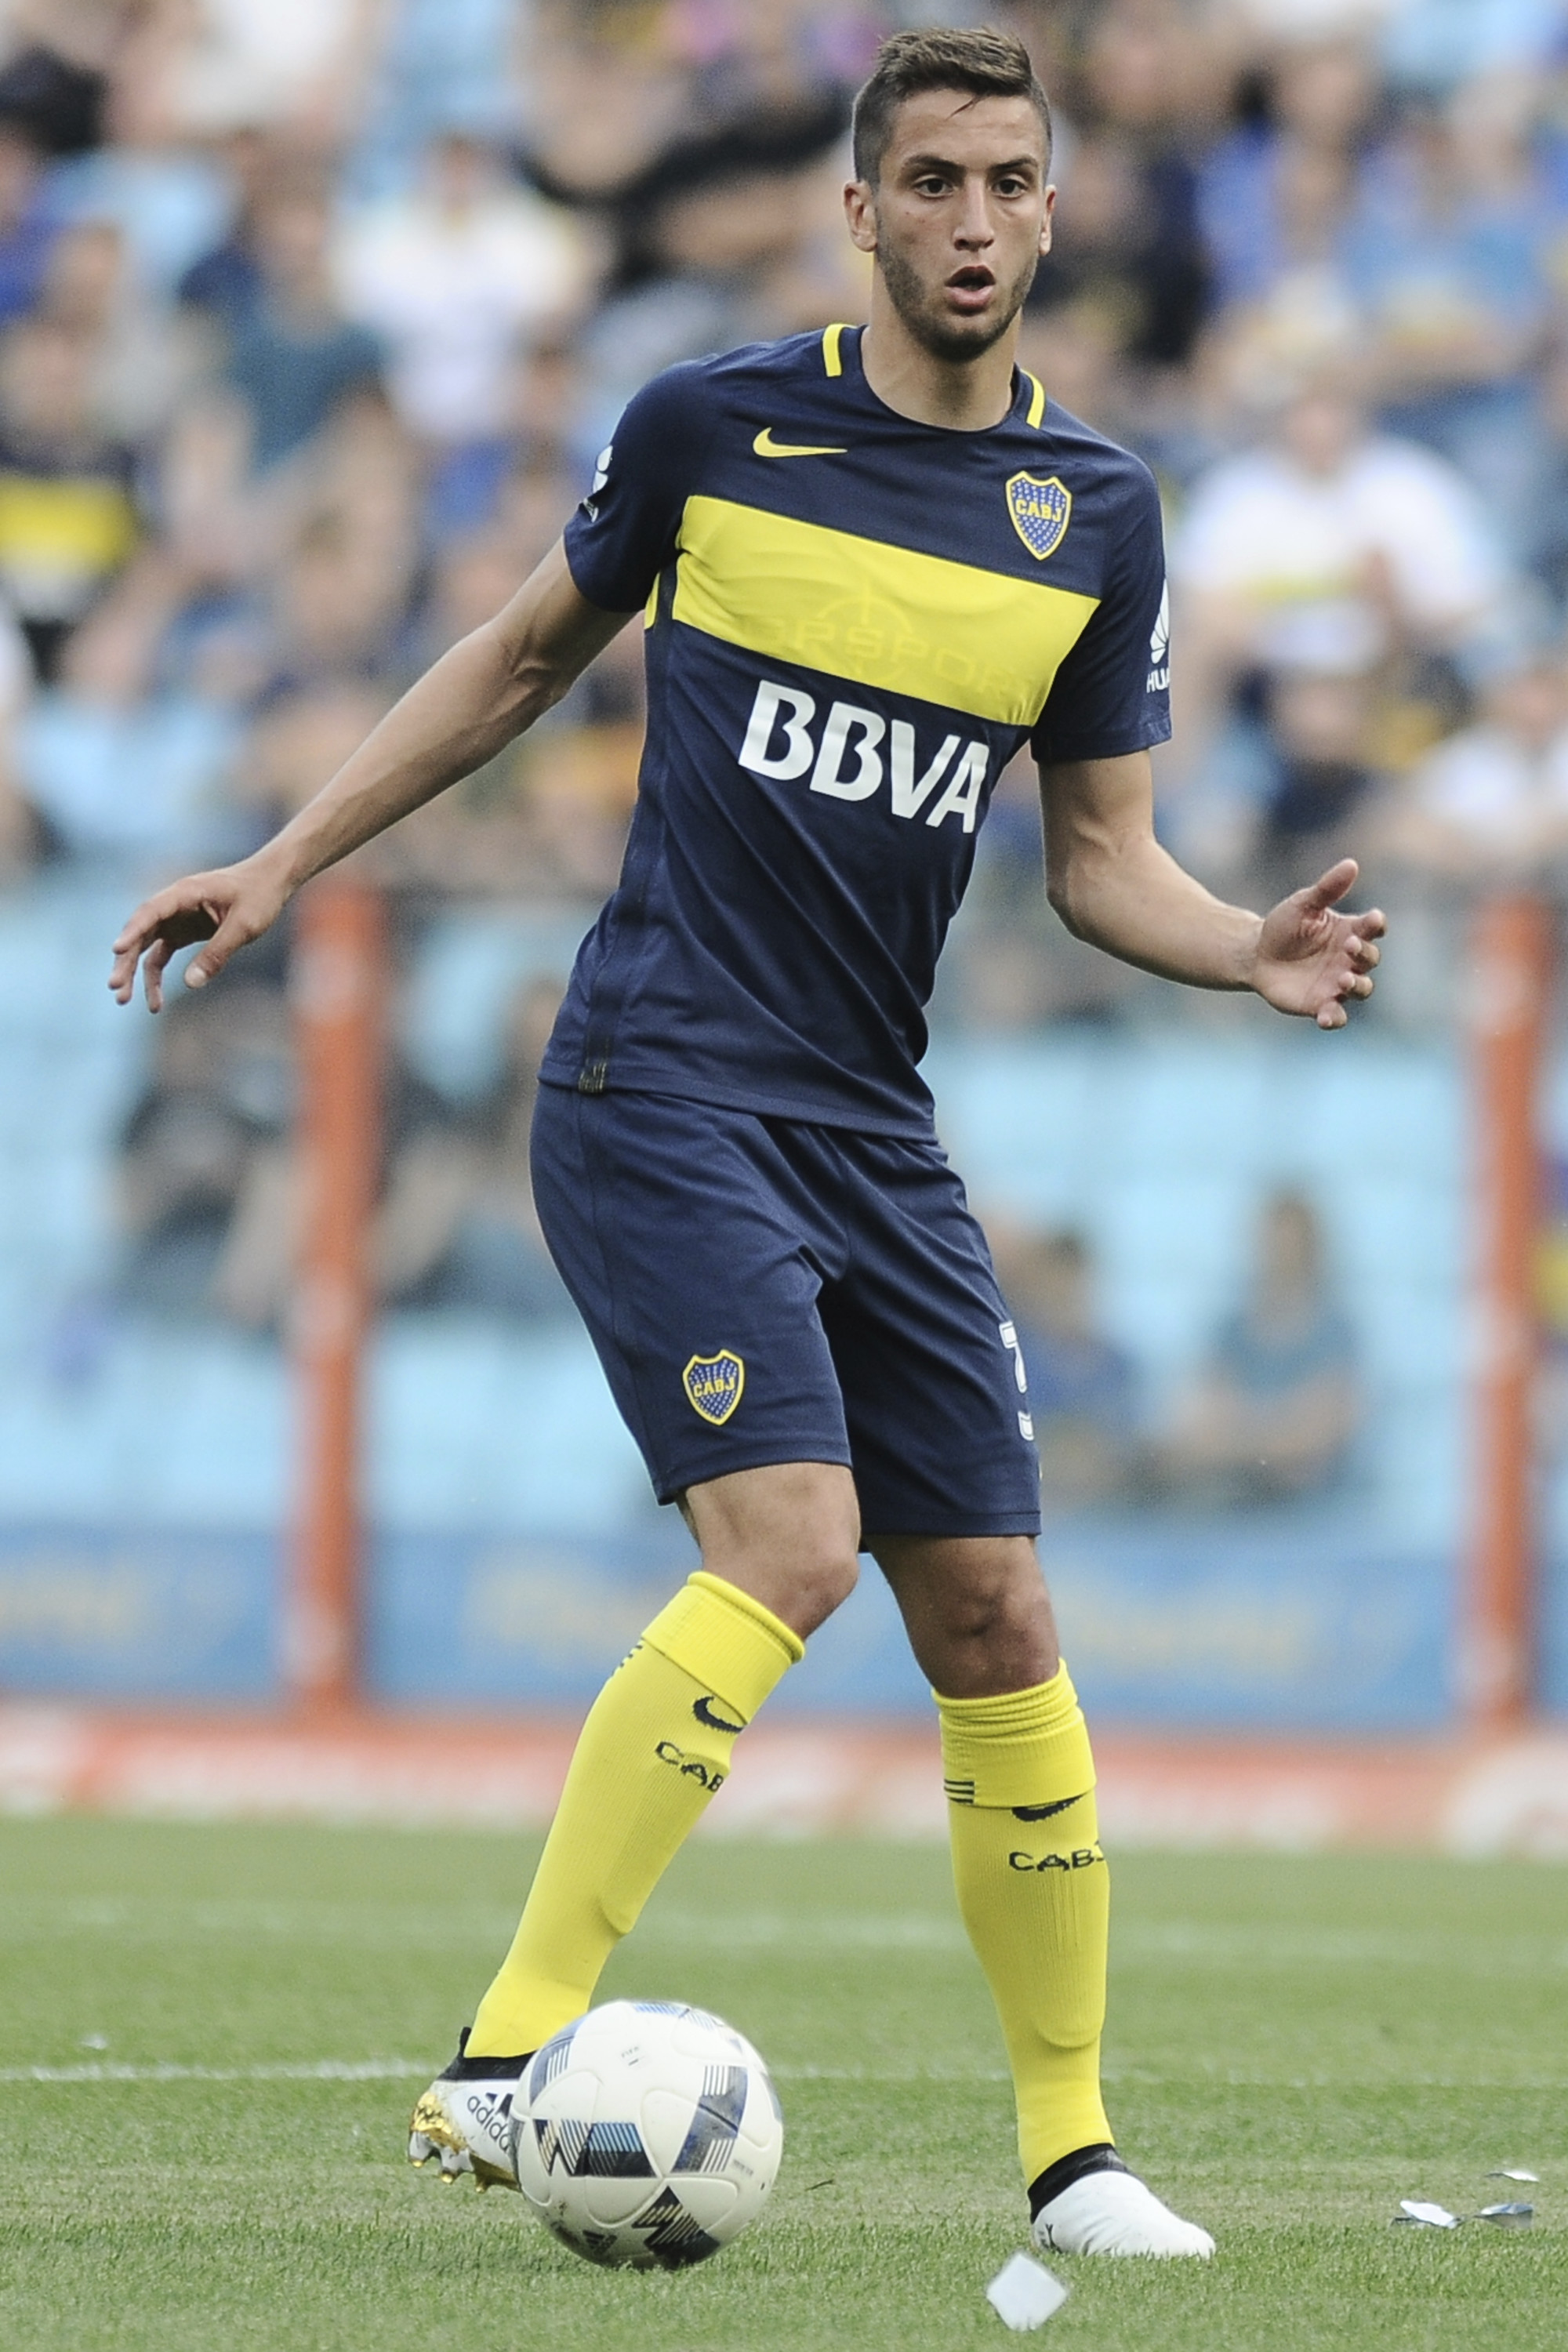 Boca Juniors confirm Manchester United's offer for midfield starlet Rodrigo Bentancur